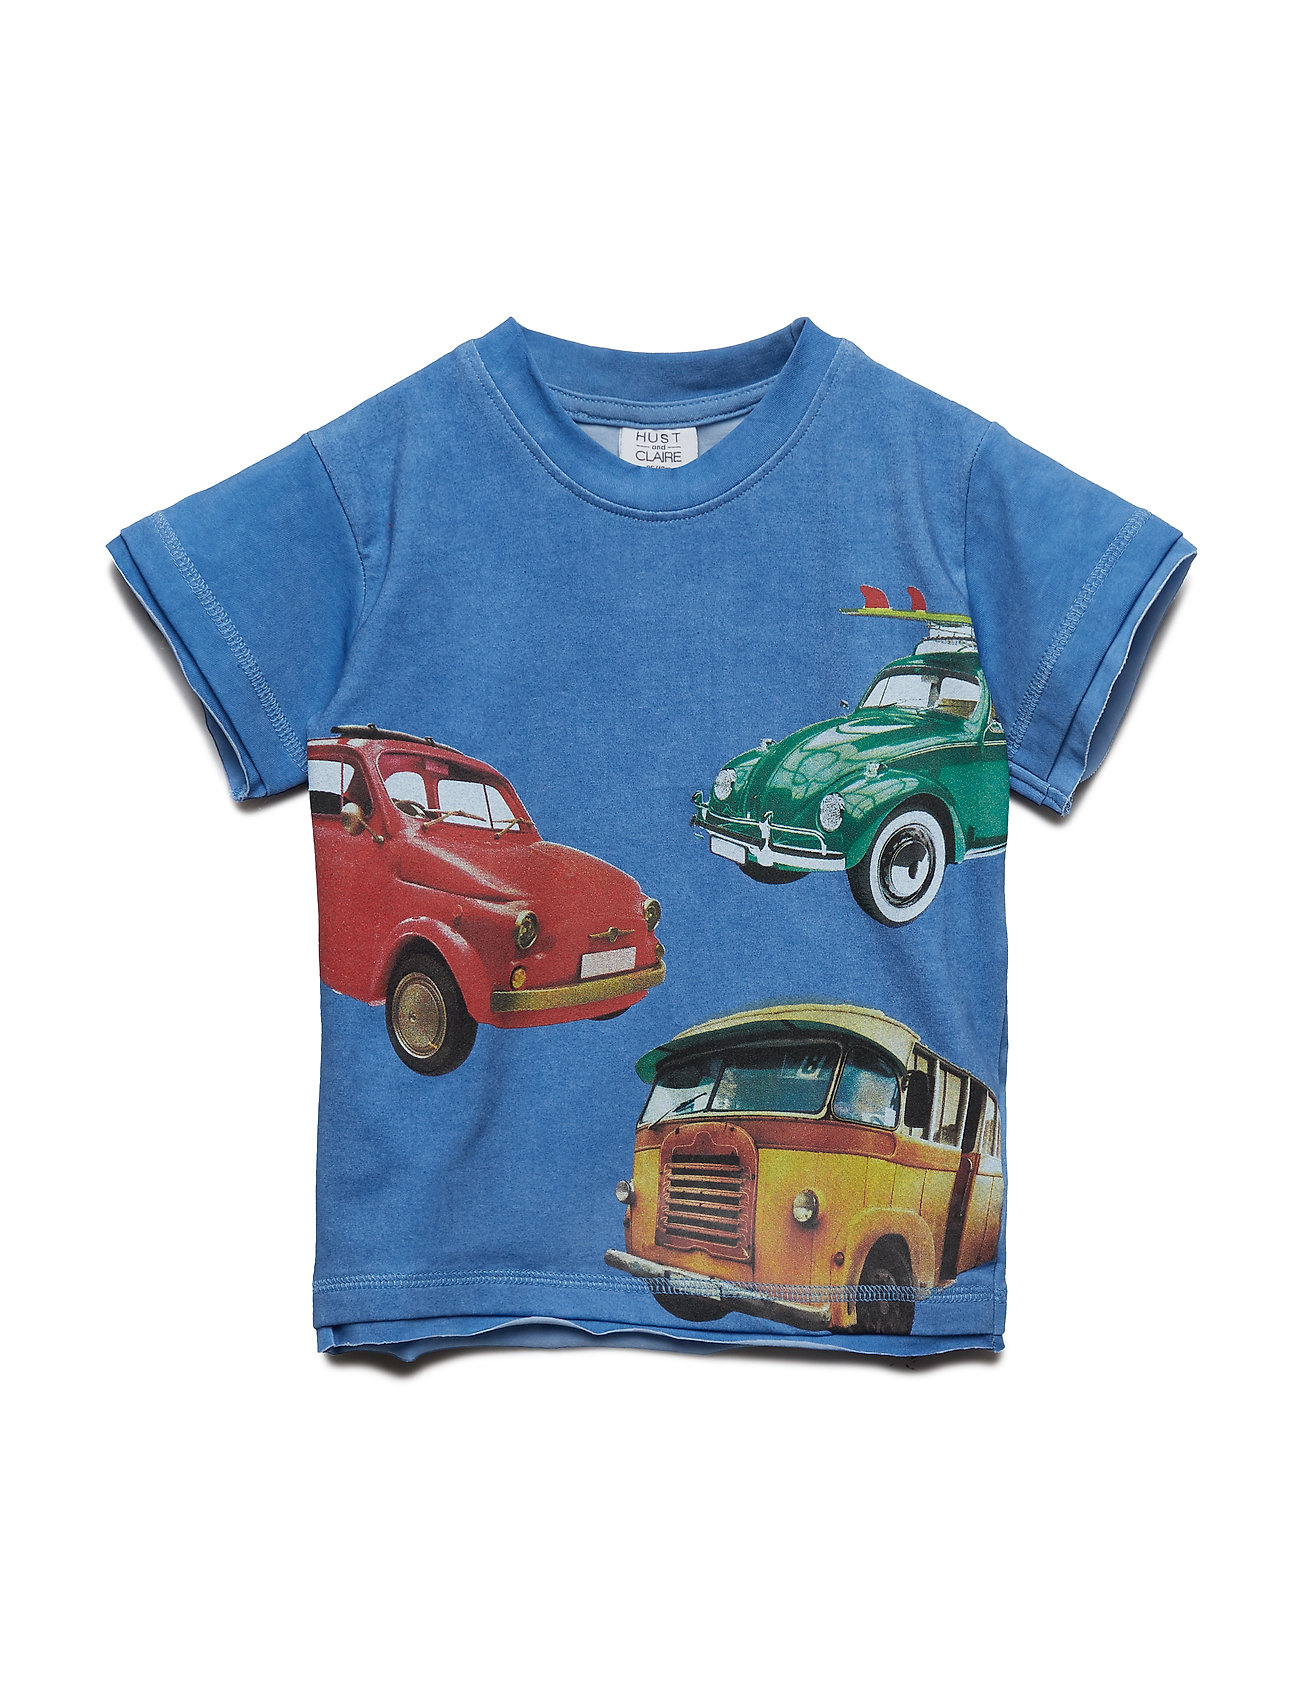 Hust & Claire Ask - T-shirt S/S - RIVIERA